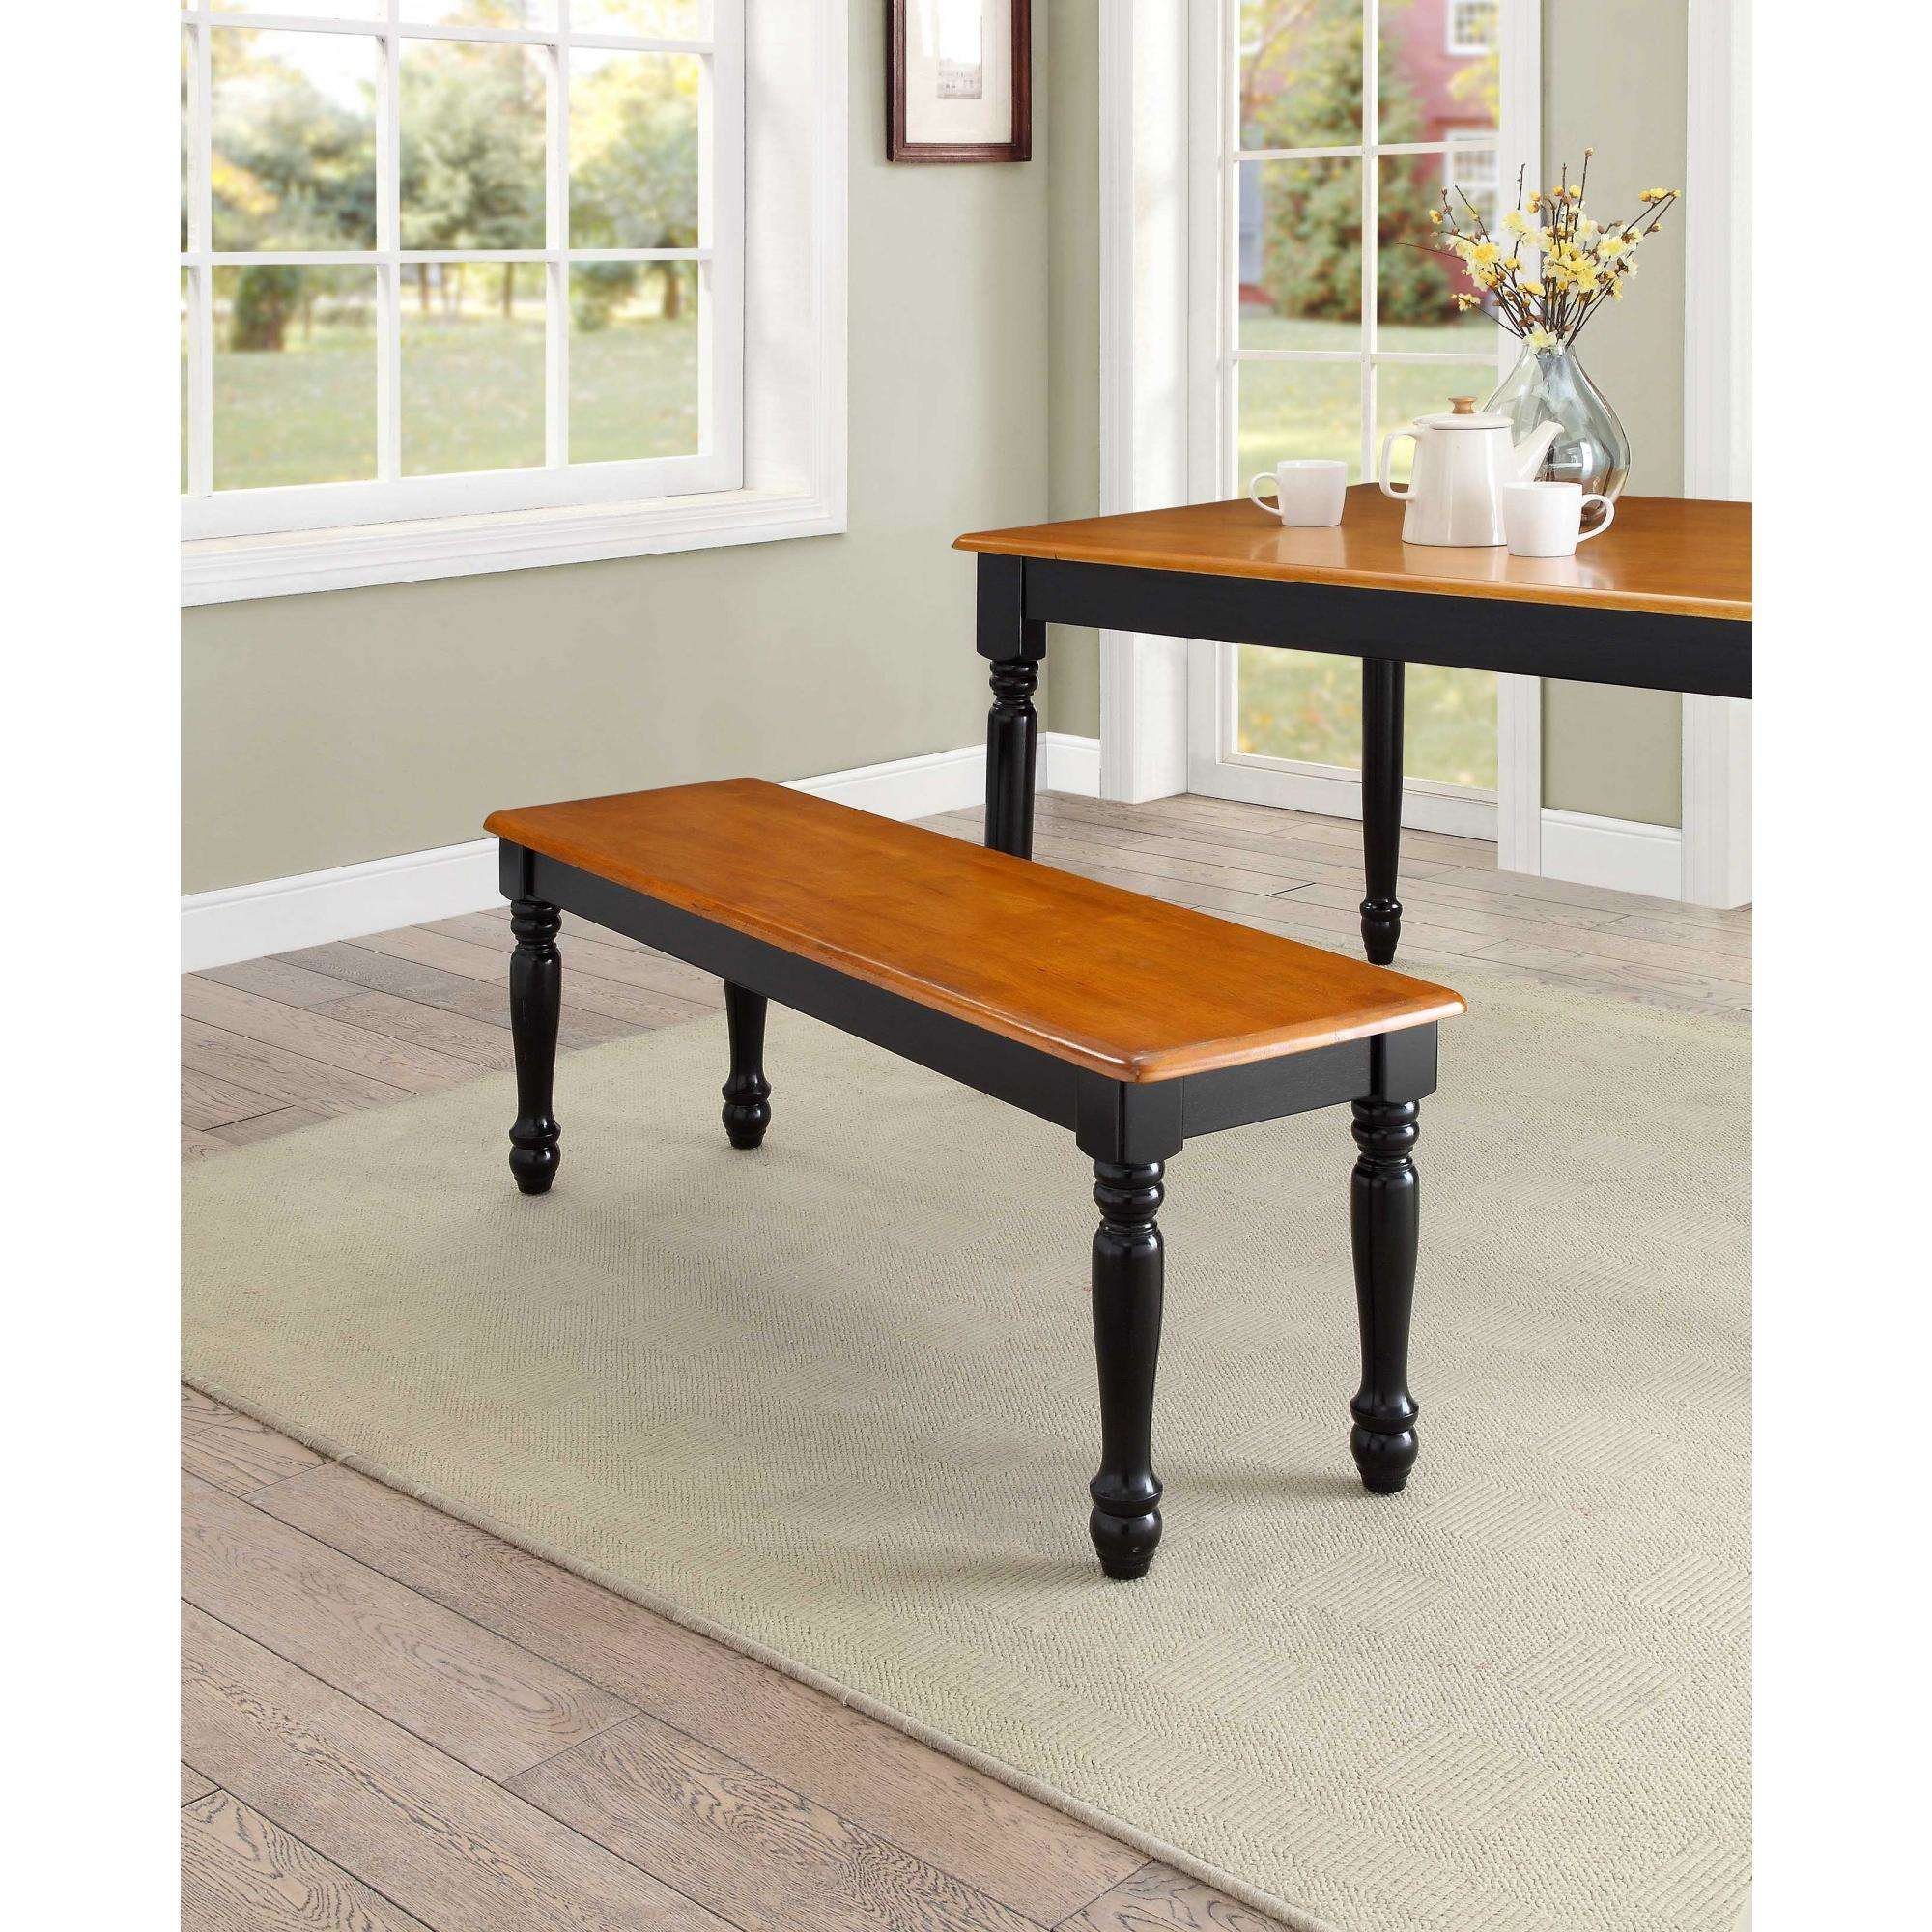 Astounding Better Homes Gardens Autumn Lane Farmhouse Solid Wood Dining Bench Black And Natural Finish Andrewgaddart Wooden Chair Designs For Living Room Andrewgaddartcom